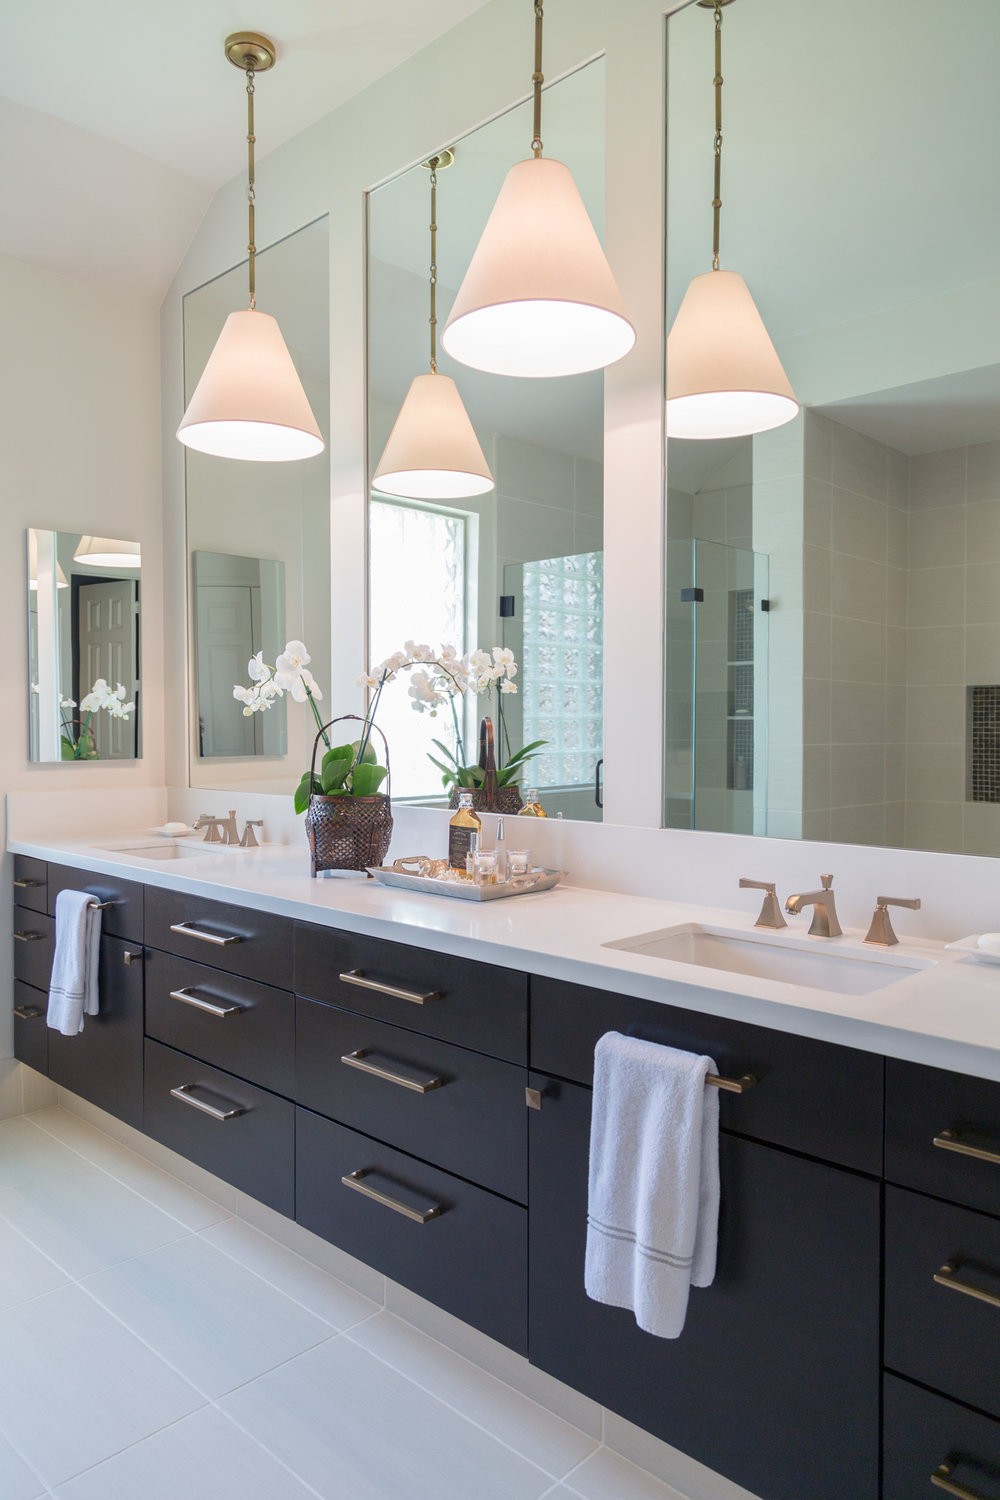 Merveilleux Bathroom Vanity With Tall Mirrors | Designer: Carla Aston, Photographer:  Tori Aston